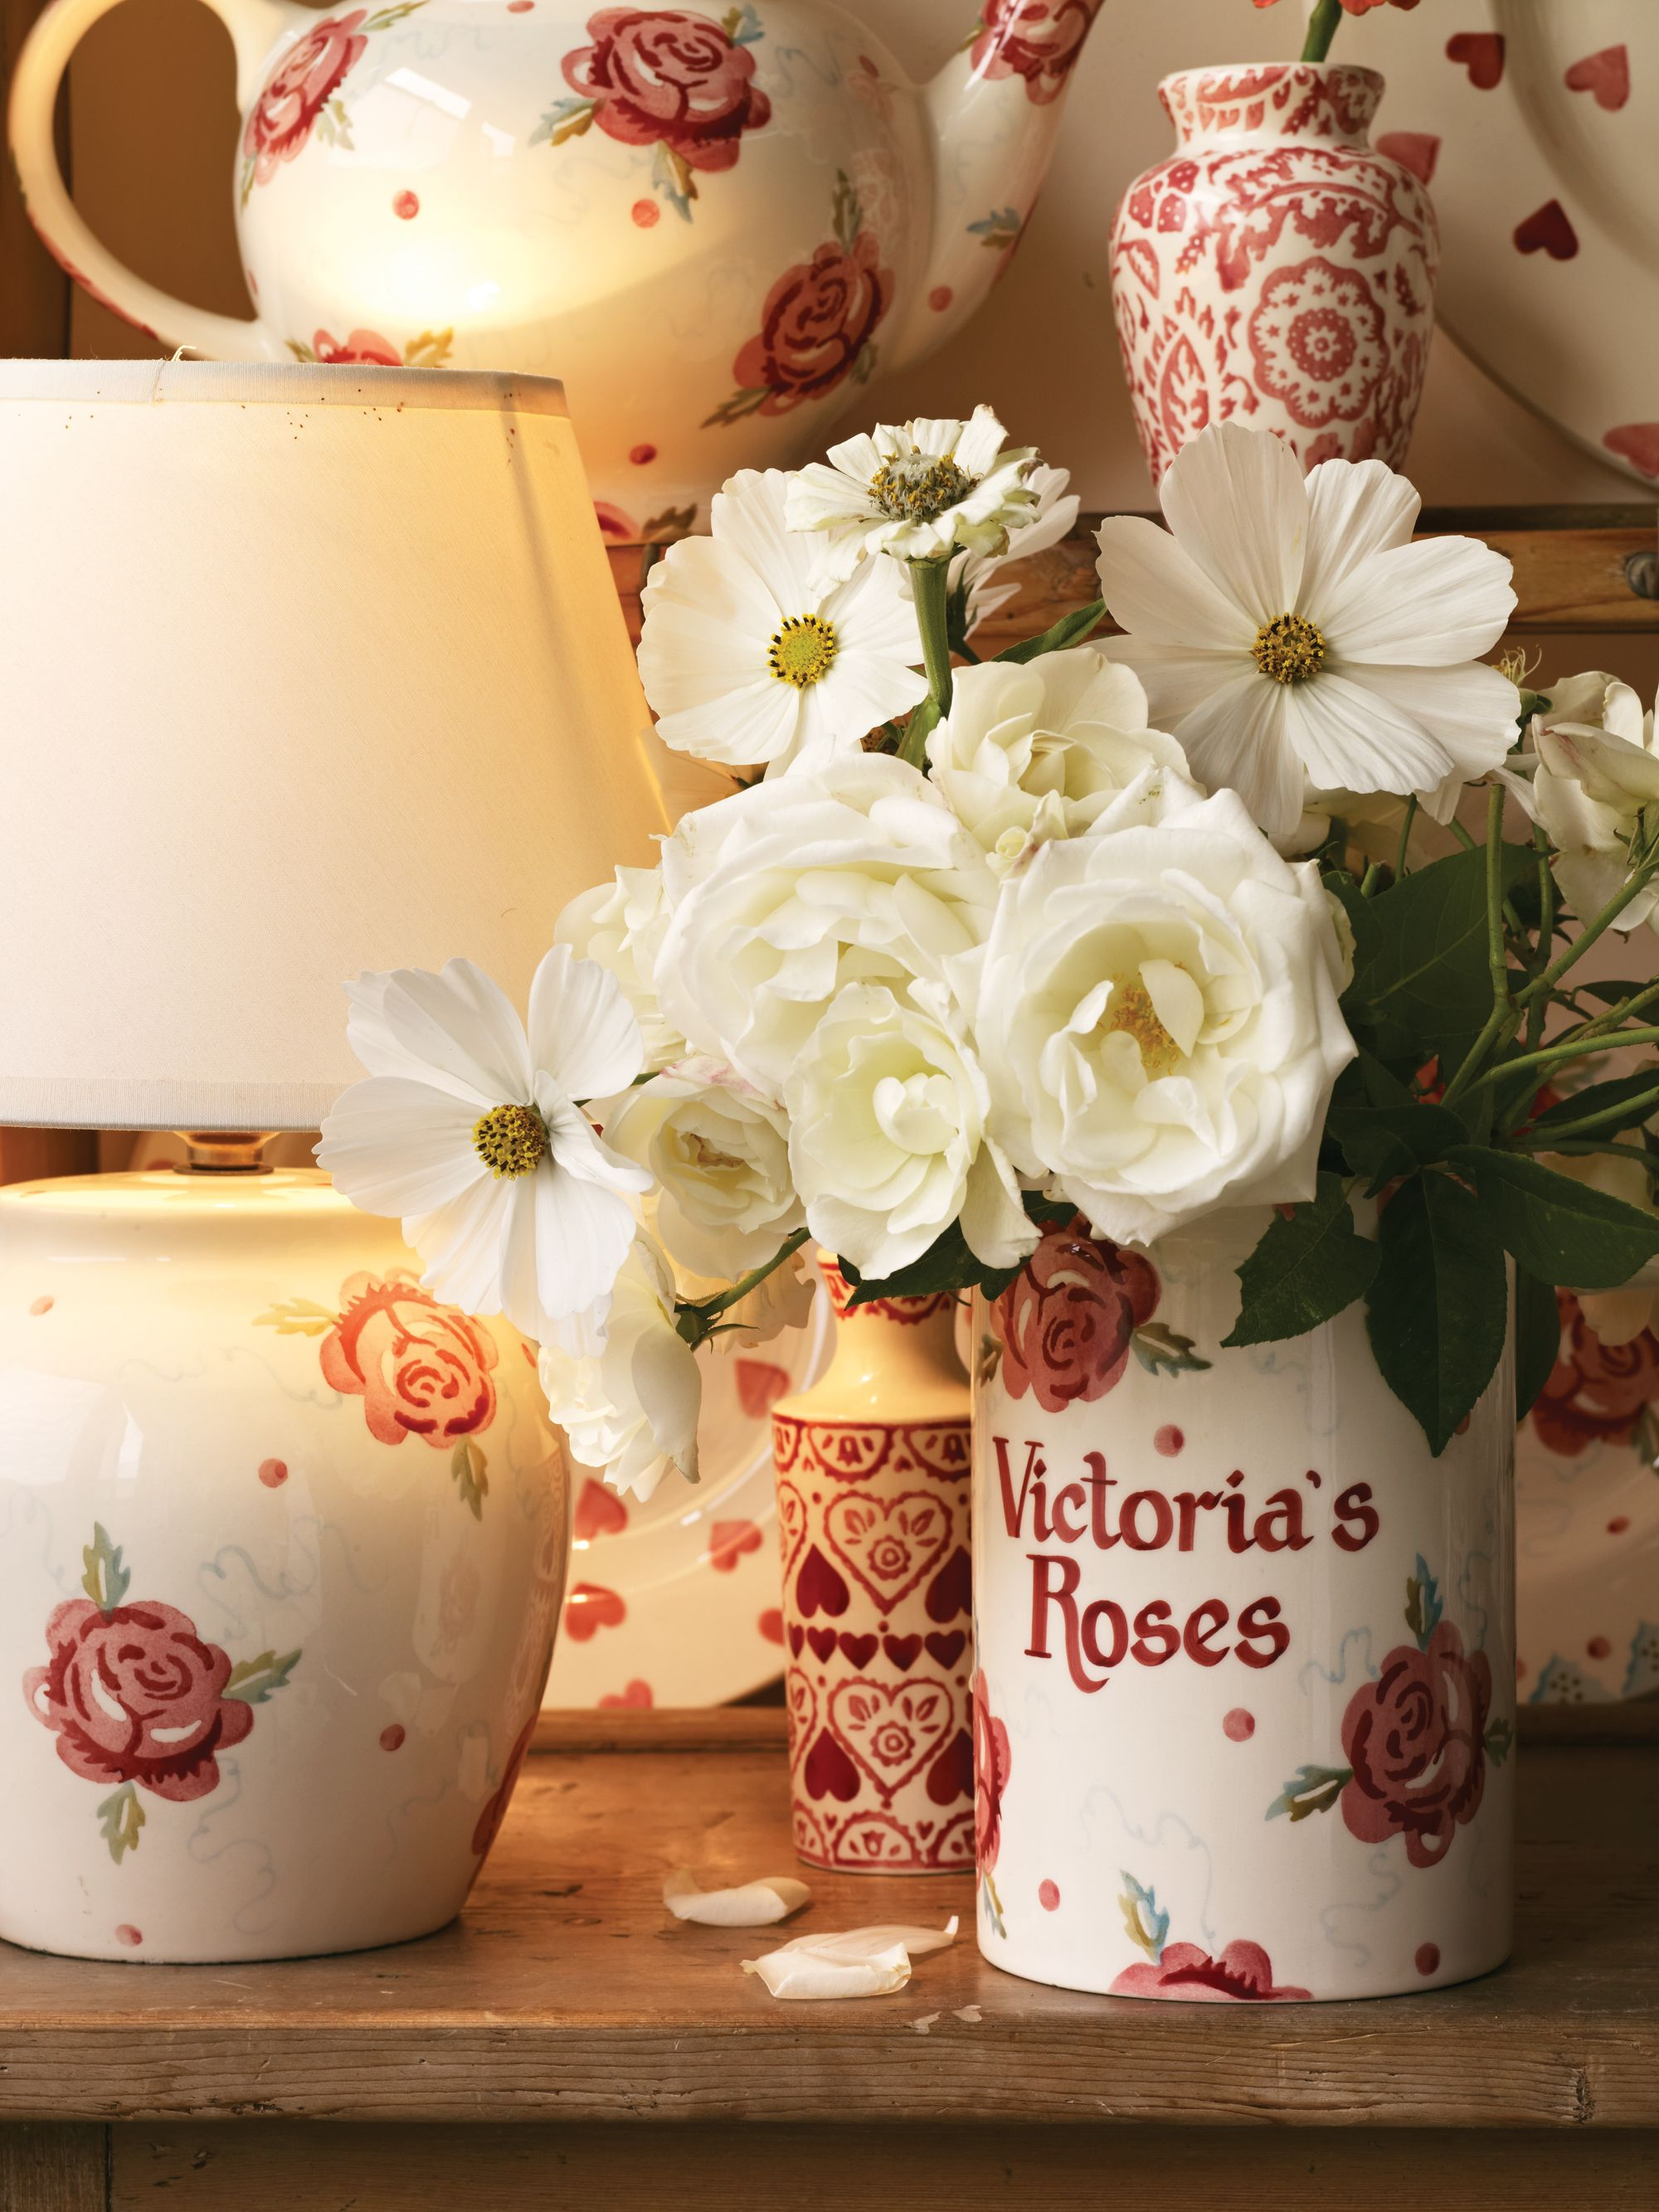 Receiving A Piece Of Personalised Pottery Or Kitchenware Is Real Treat For Someone You